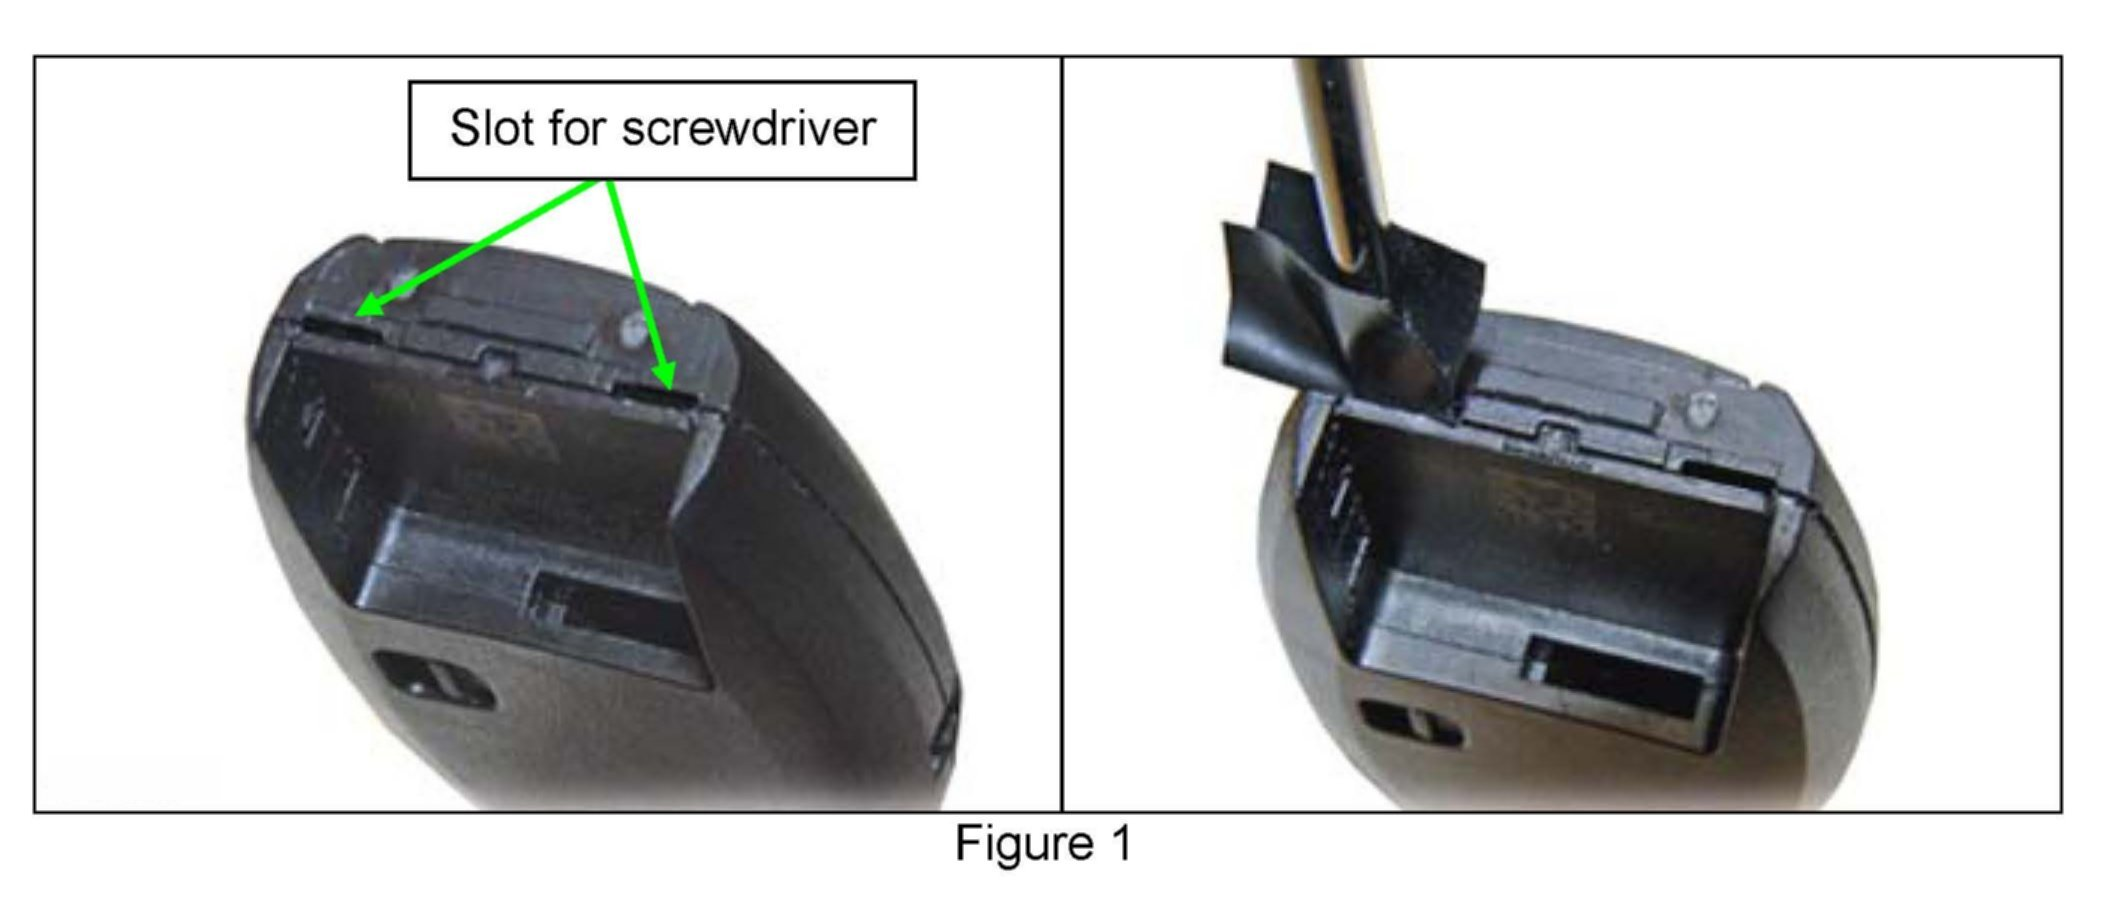 Place A Piece Of Tape On The End Of A Small Flathead Screwdriver. Graphic